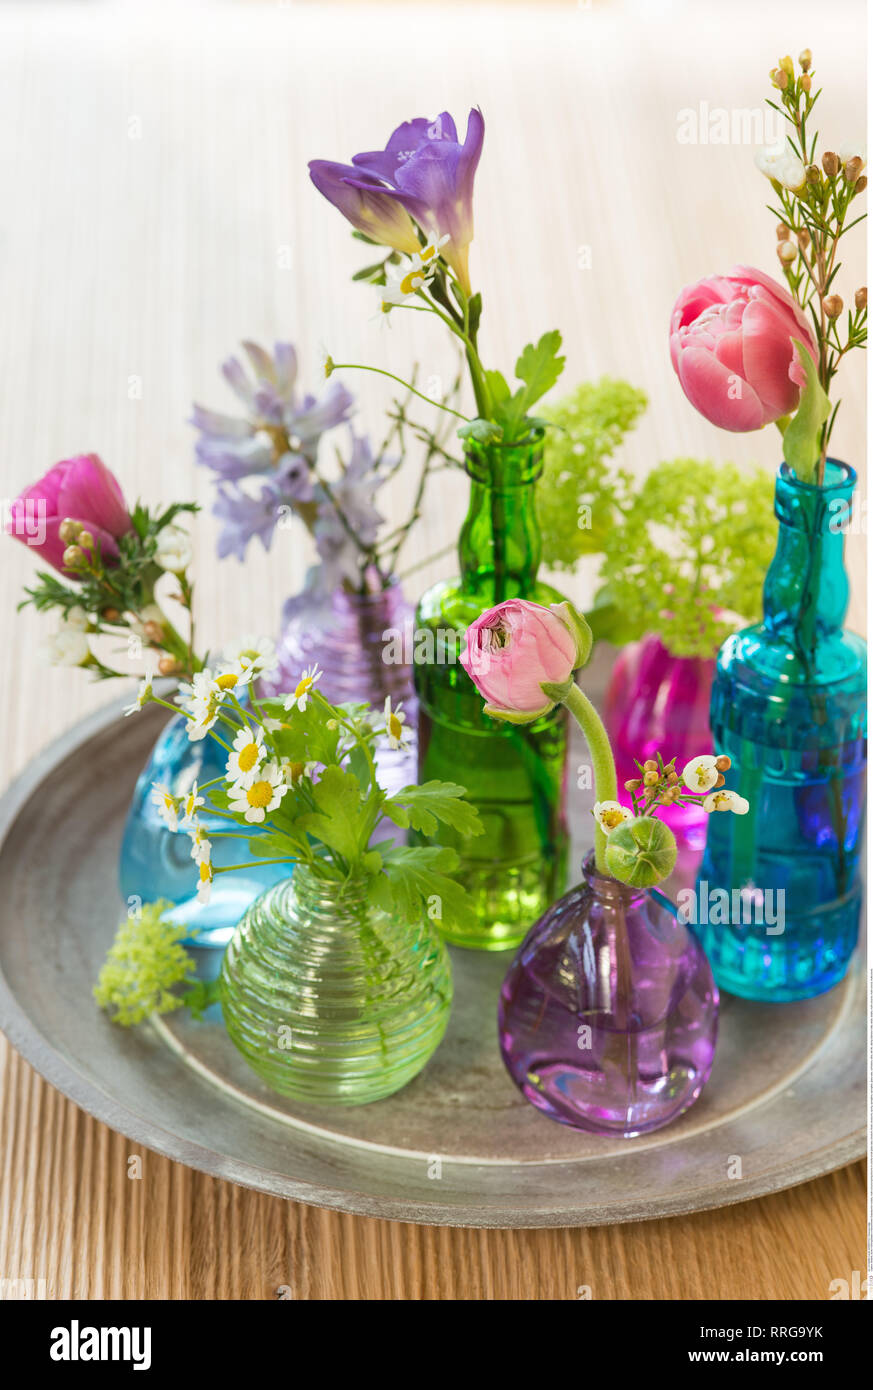 botany, multi-coloured spring blooms, Caution! For Greetingcard-Use / Postcard-Use In German Speaking Countries Certain Restrictions May Apply - Stock Image